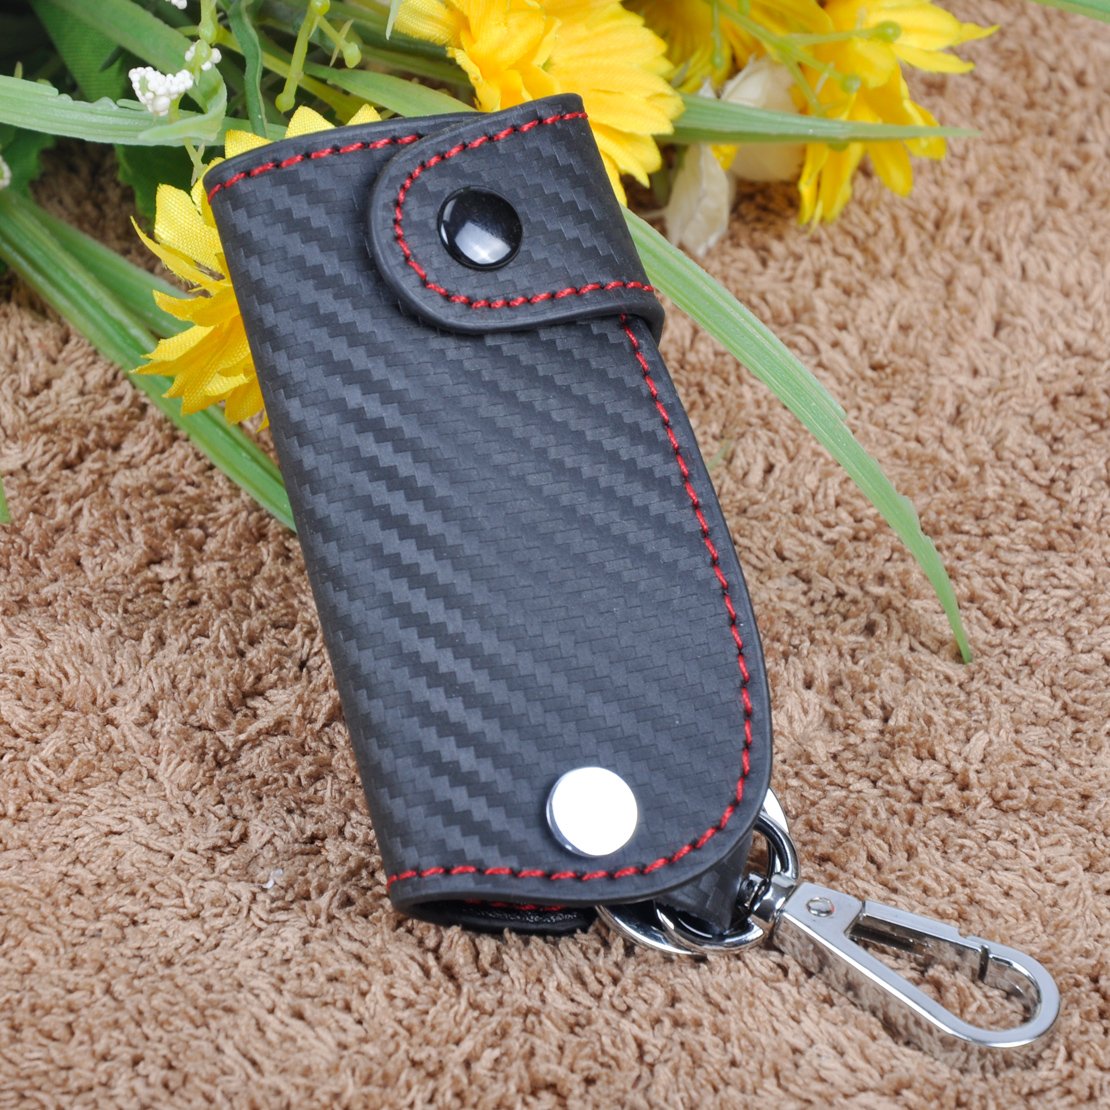 DWCX 3D Leather Carbon Fiber <font><b>Remote</b></font> Key Case chain <font><b>keyless</b></font> Fob cover Holder for Porsche Mercedes-Benz VW <font><b>Honda</b></font> Infiniti Lexus image